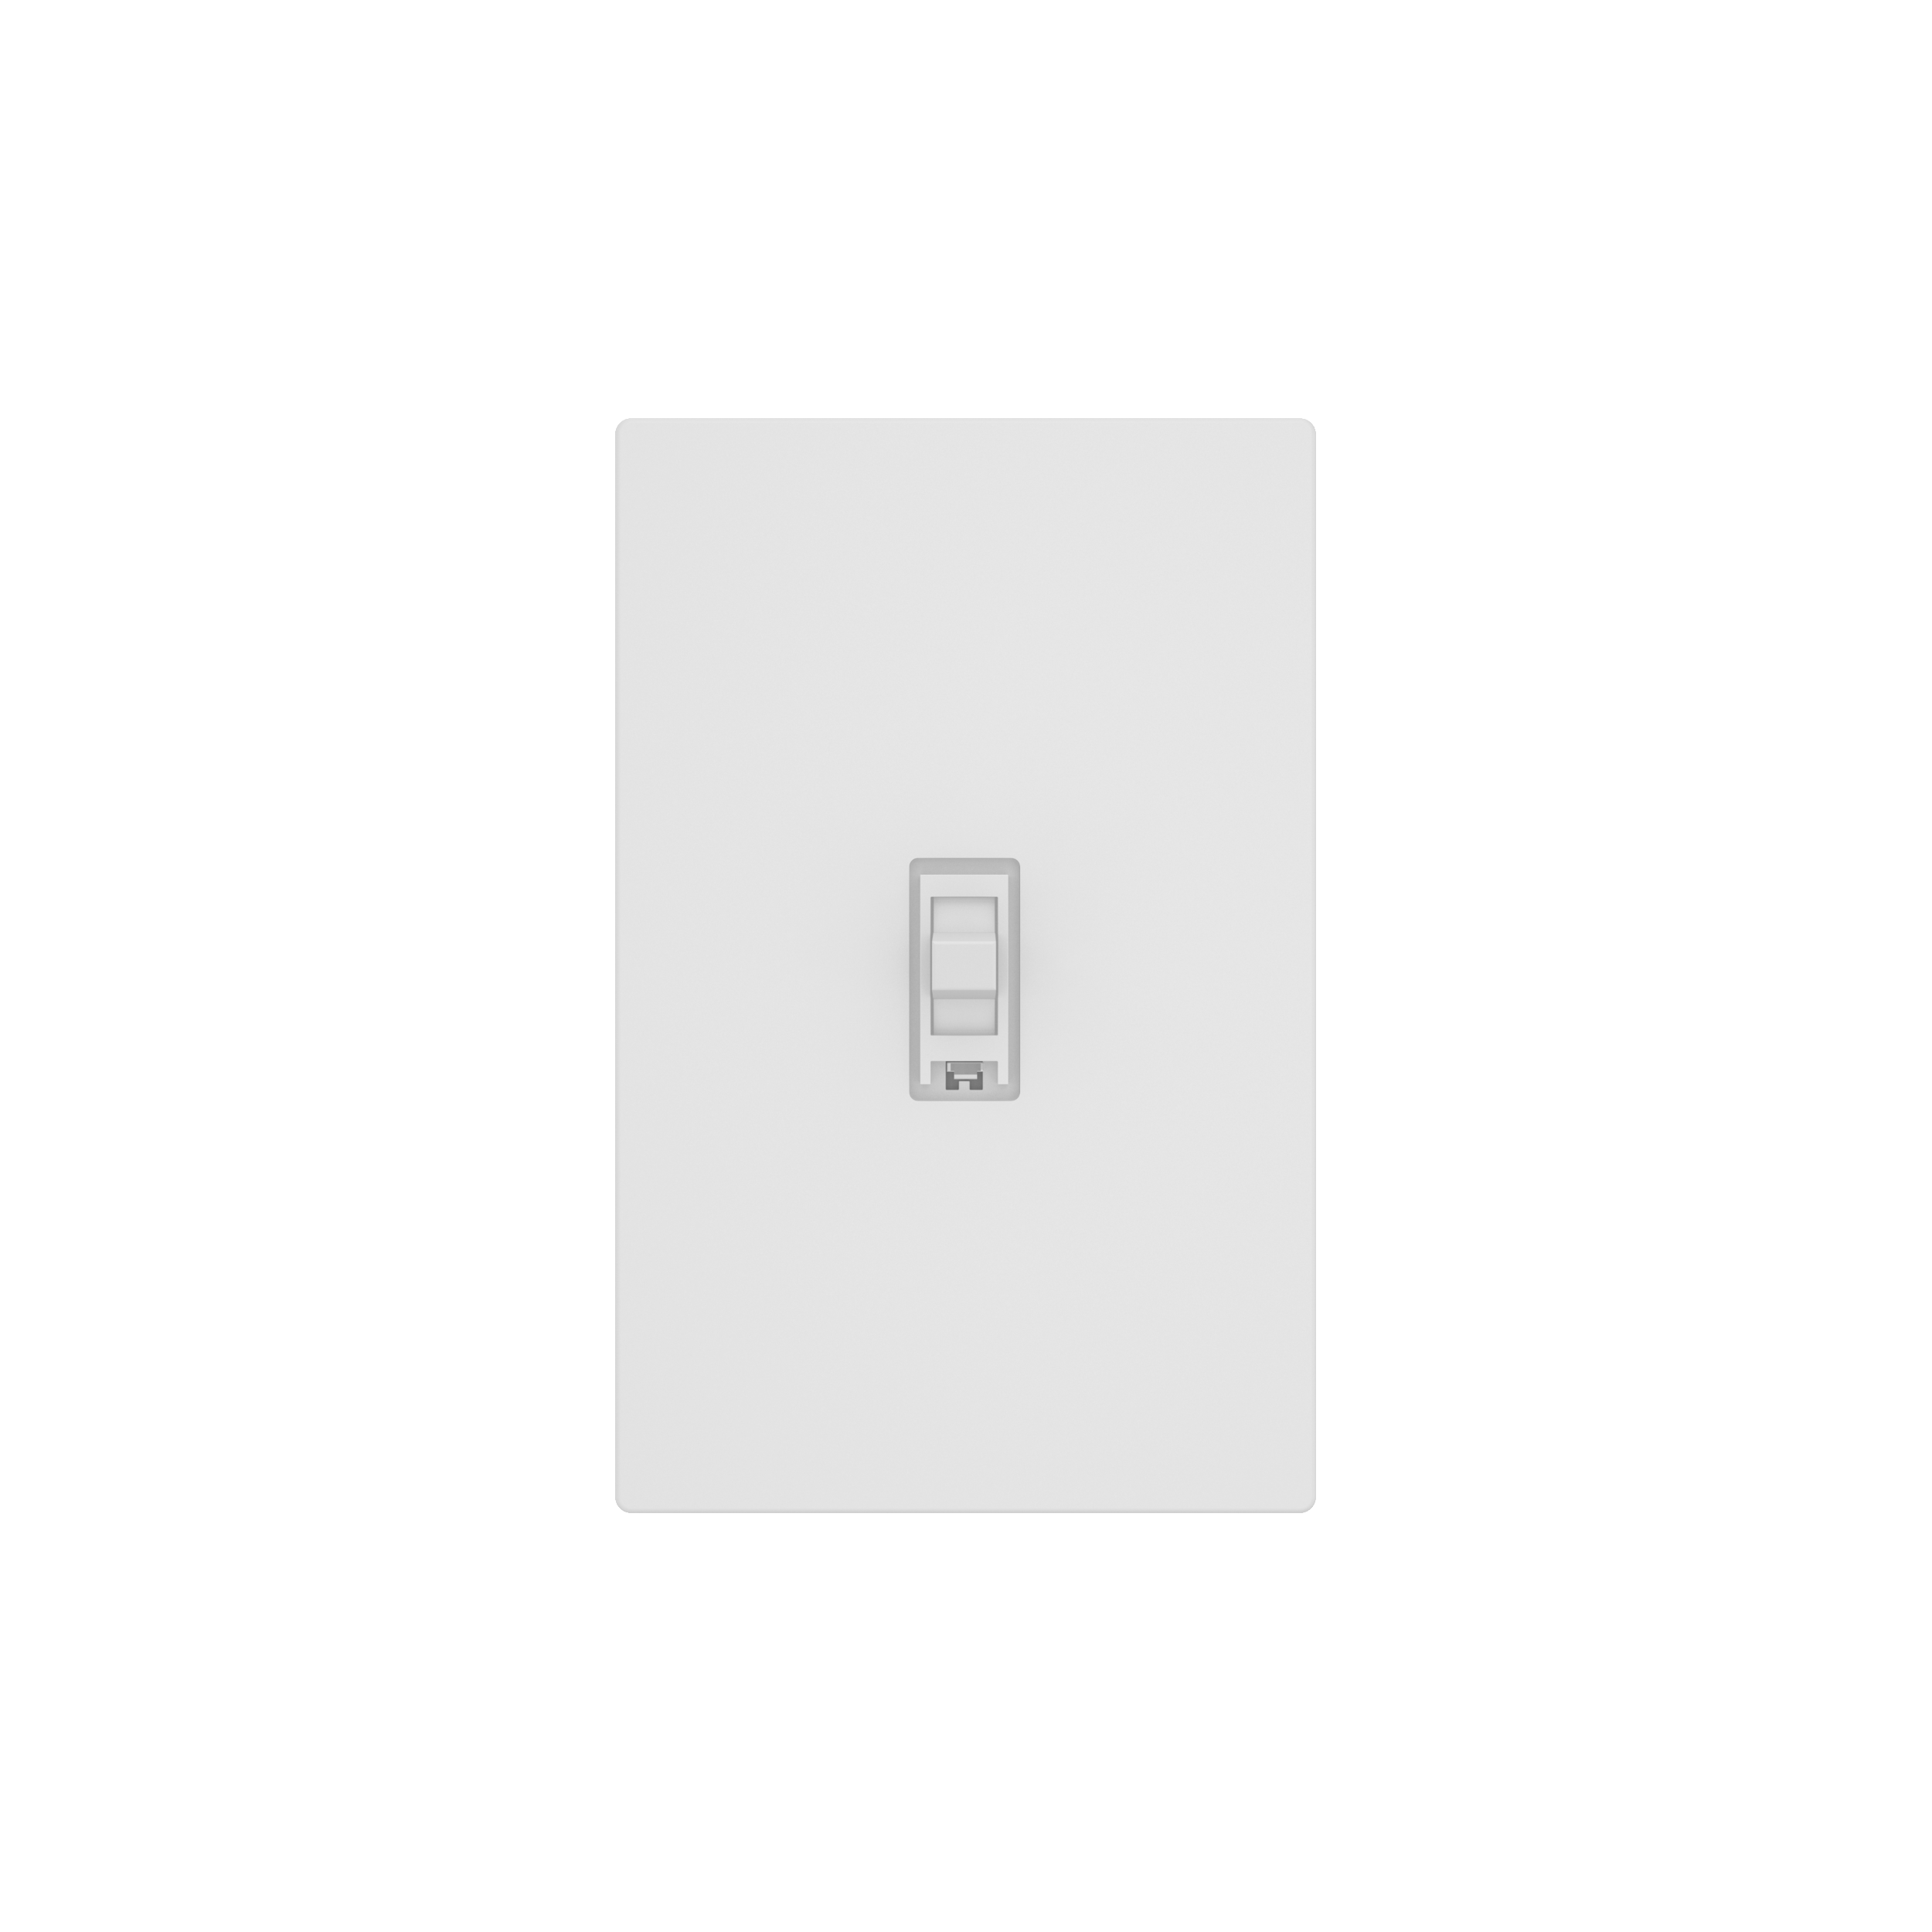 Toggle Switch 01.png